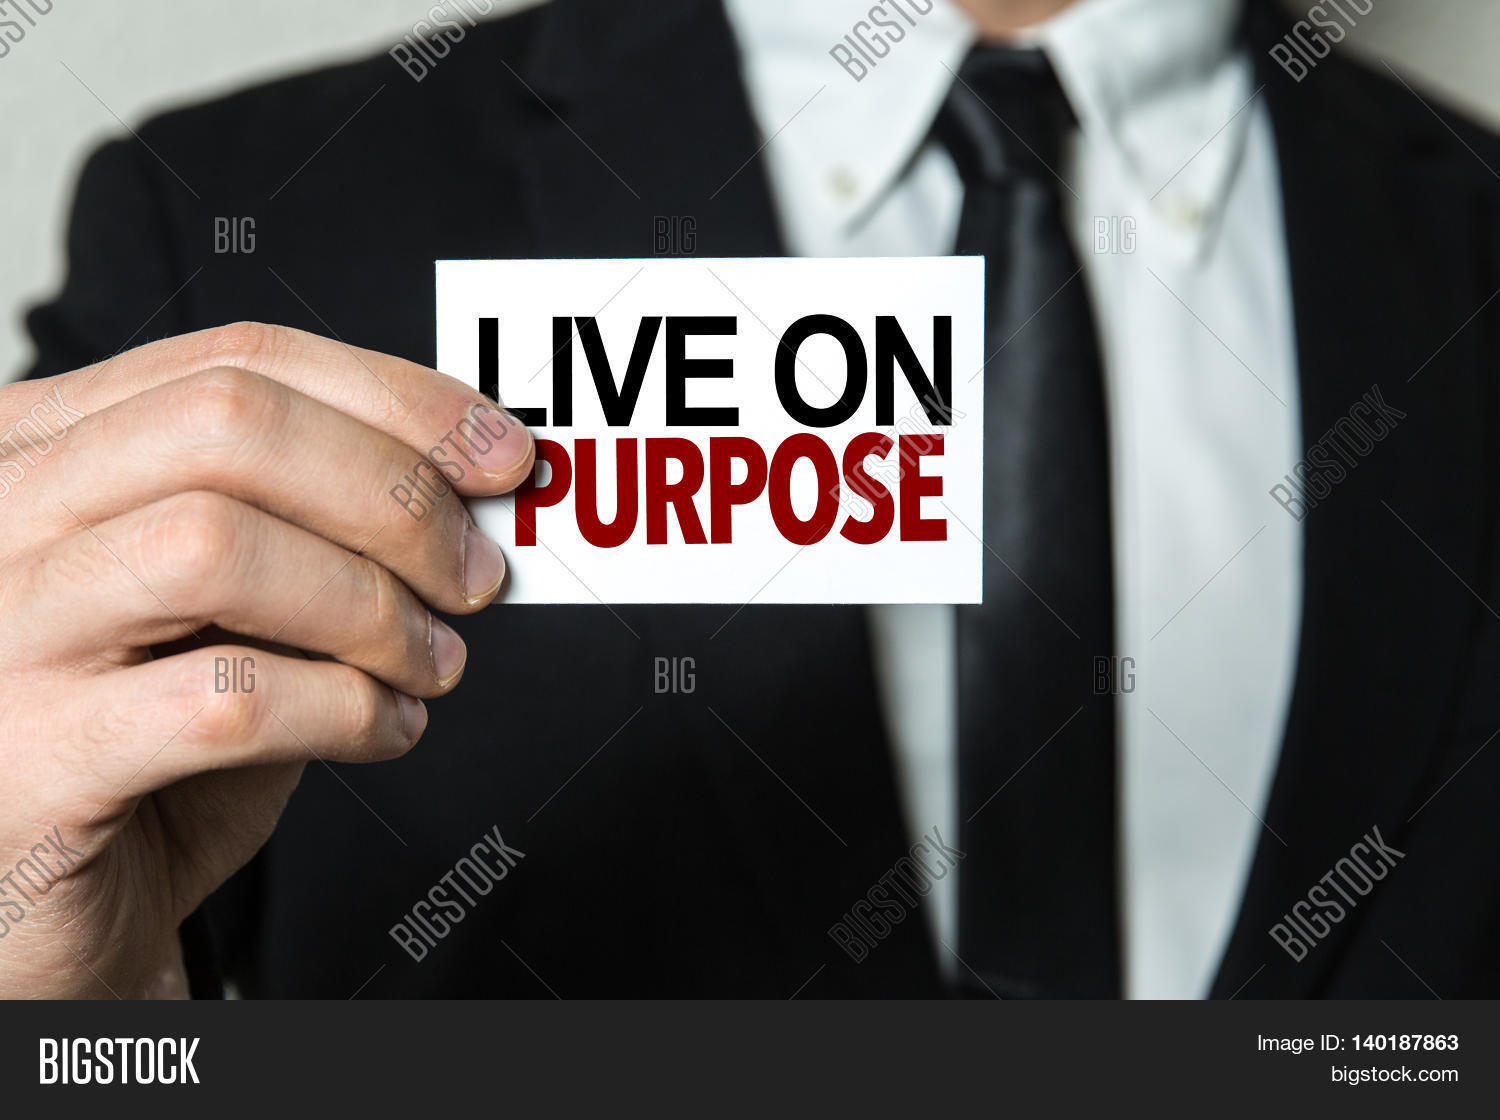 Live on Purpose Stock Photo & Stock Images | Bigstock